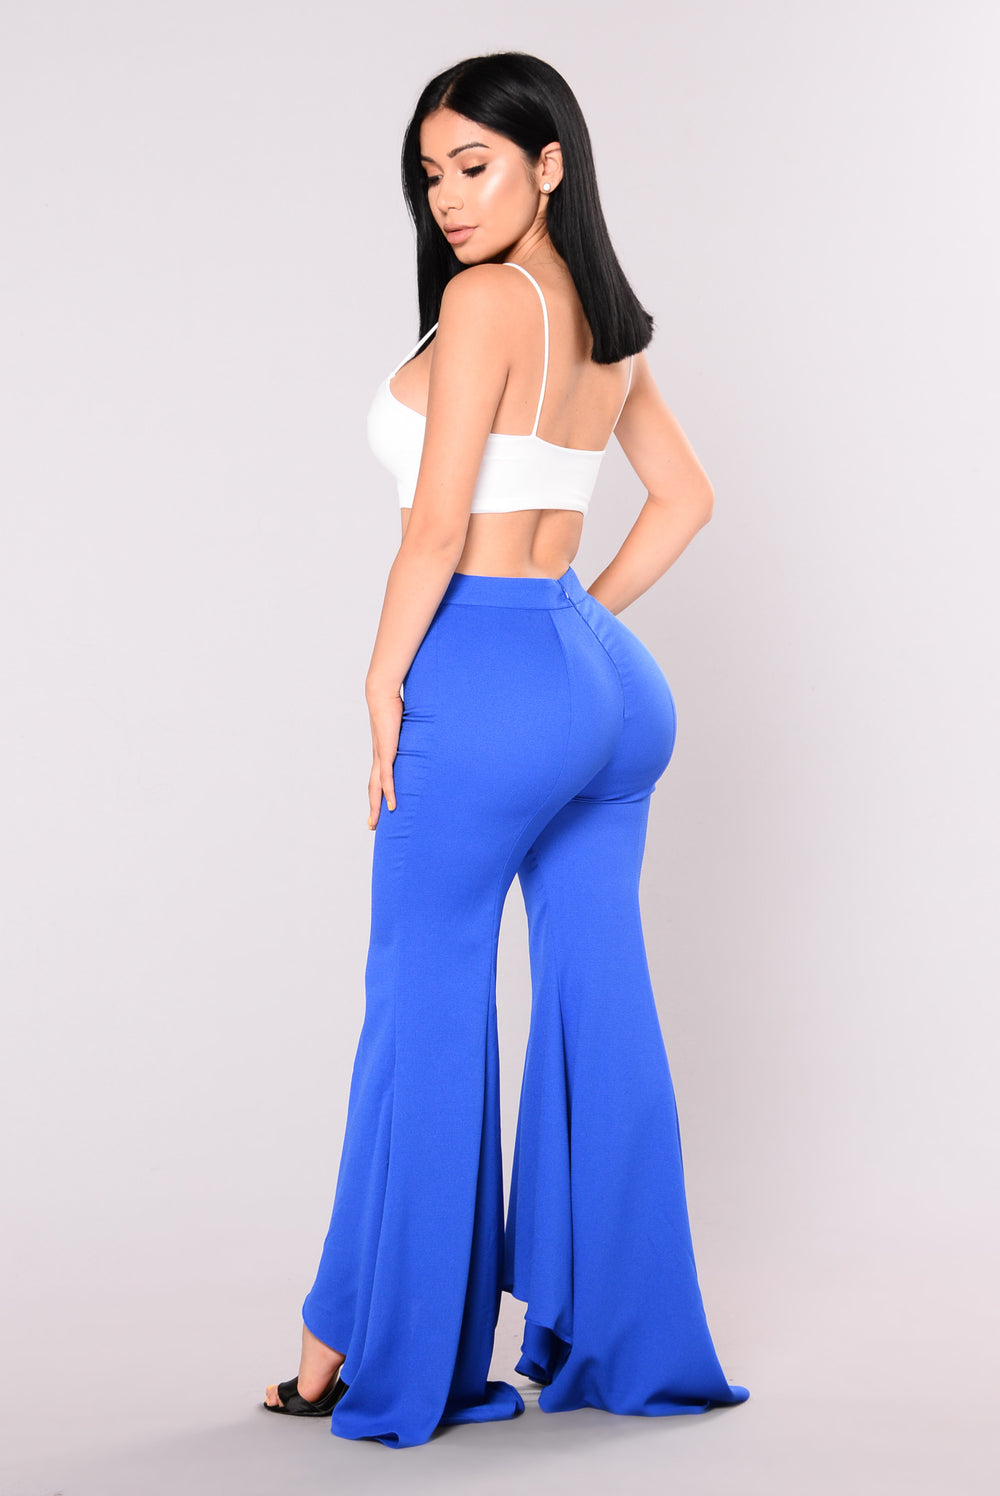 Sancia Wide Leg Pants - Royal